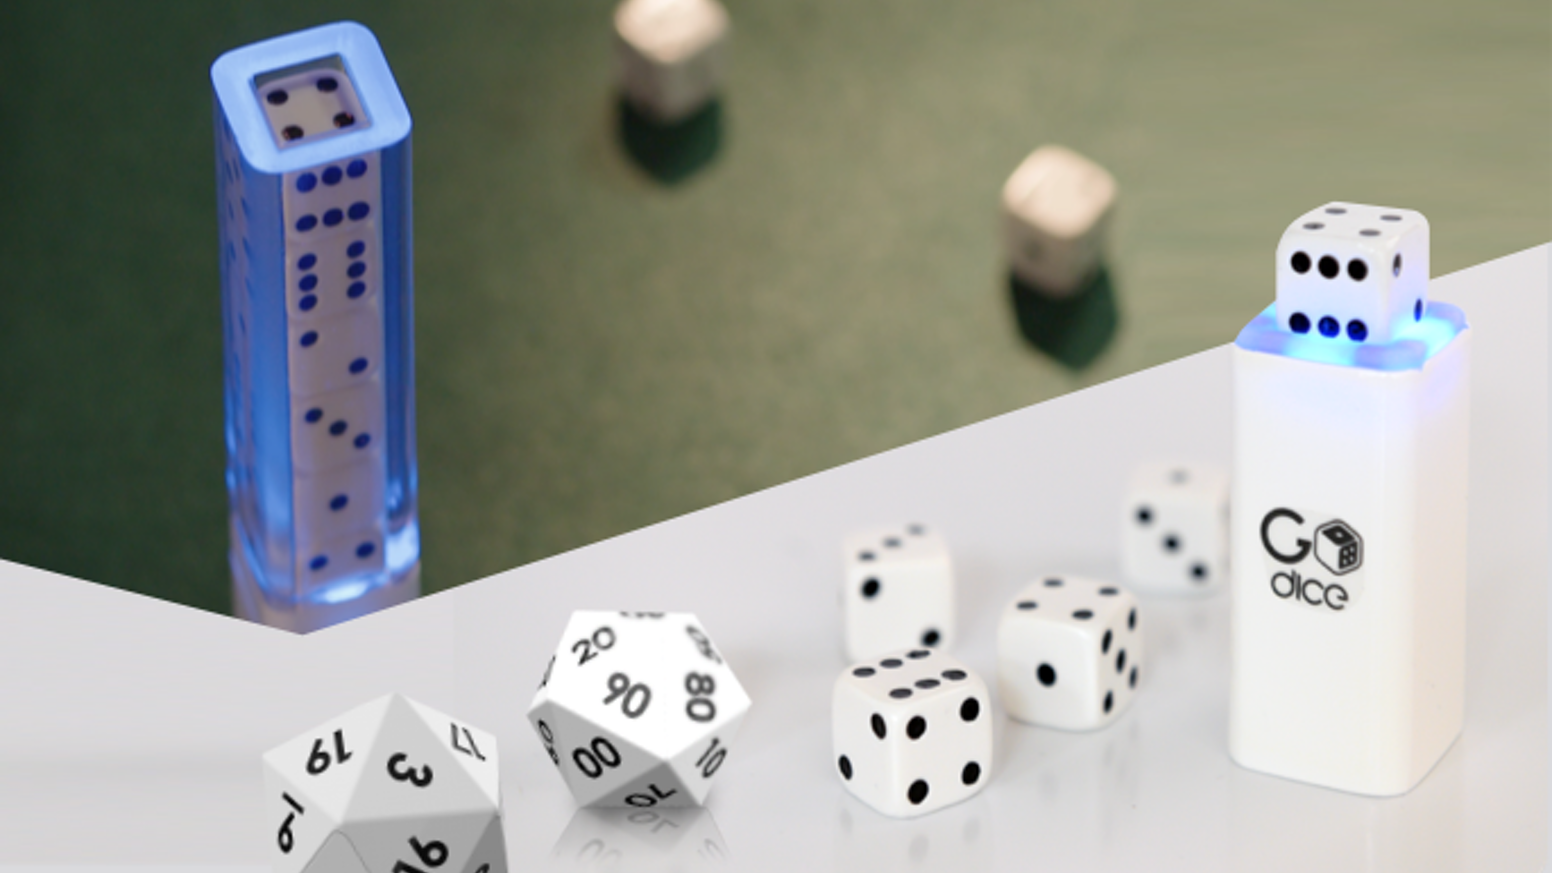 Elevate game night and RPG to a whole new level - Play online and offline with friends & family.